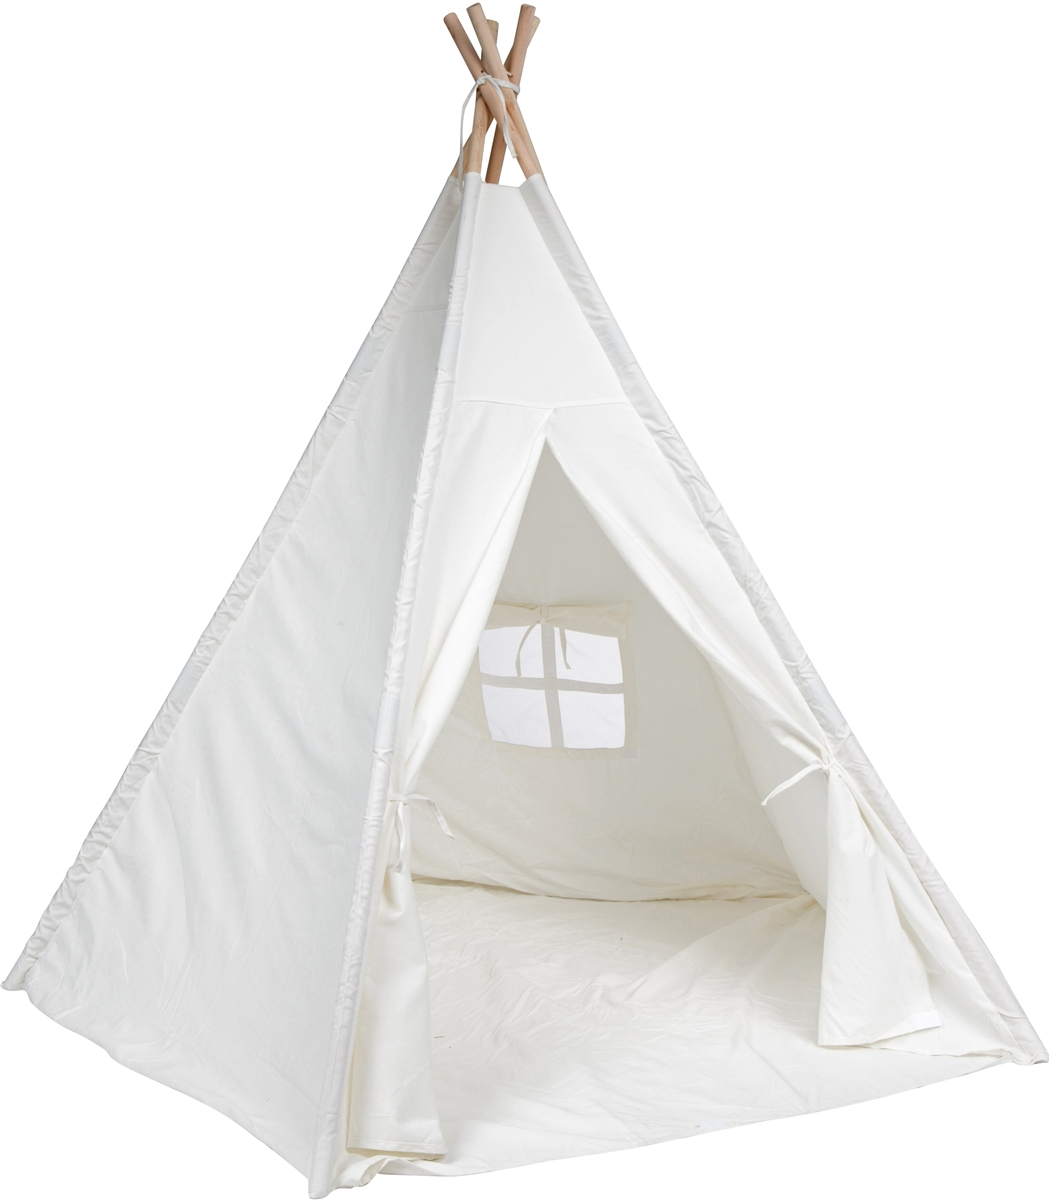 Trademark Innovations Authentic Giant White Canvas Teepee 6